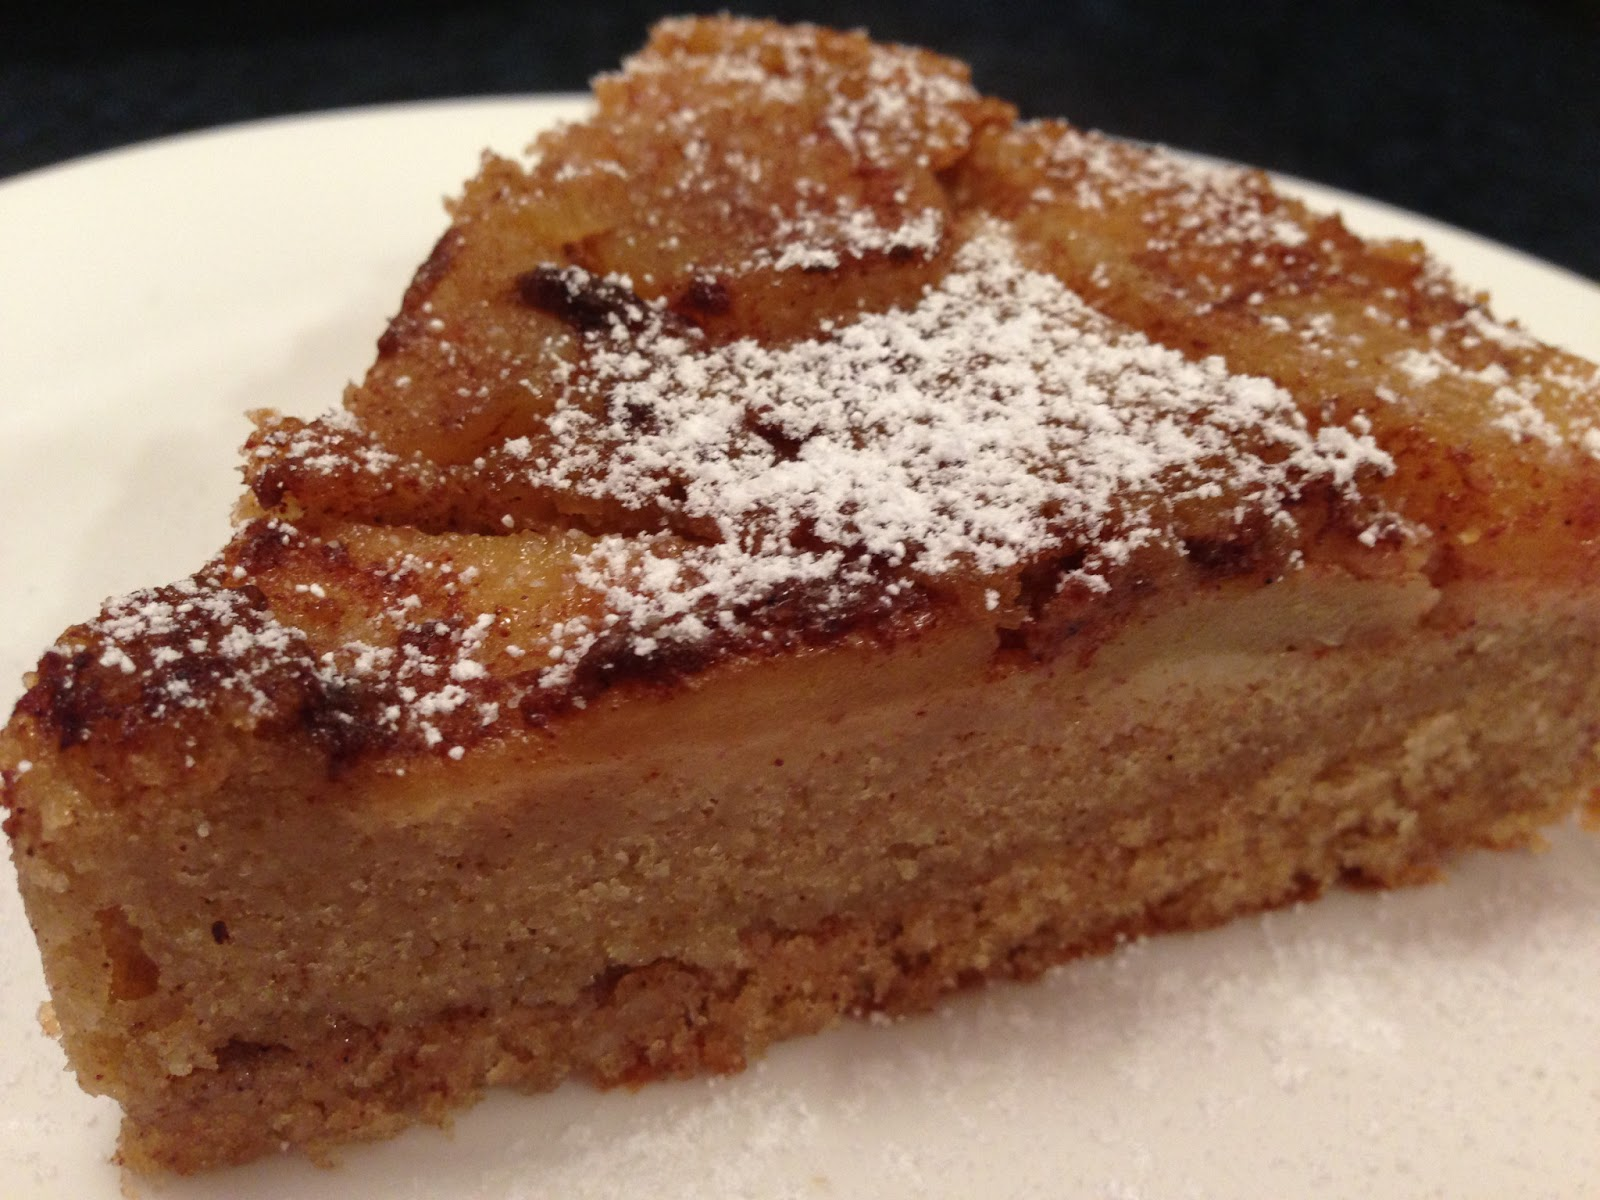 Additive Free Bites: Apple & Cinnamon Upside Down Cake